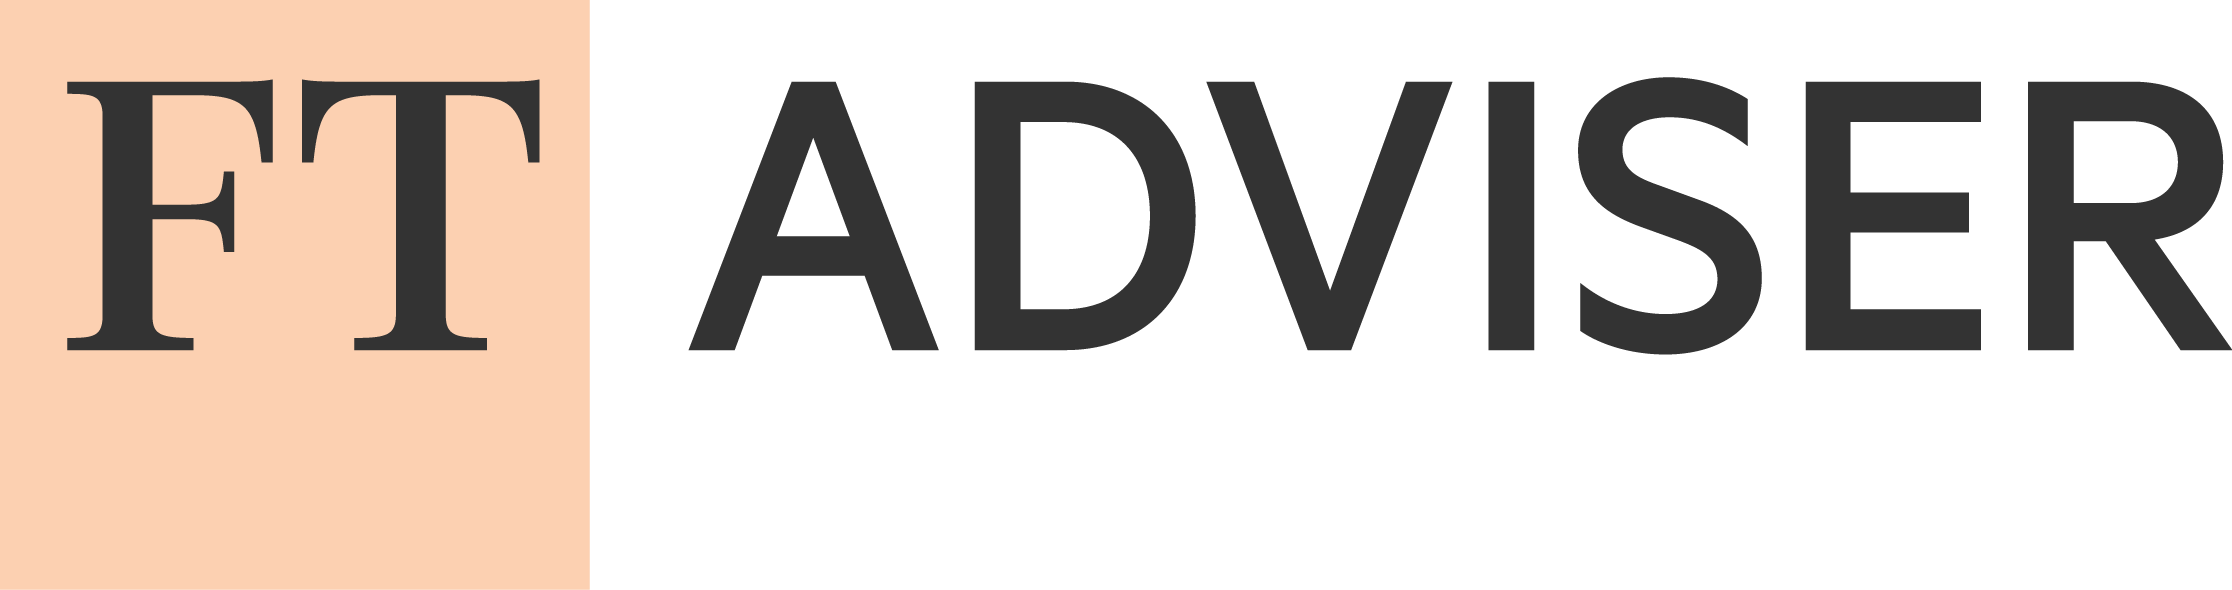 FTAdviser.com is dedicated to the financial intermediary market covering investments, mortgages, pensions, insurance, regulation and other key issues.   The strength of FTAdviser.com comes from dedicated up-to-the-minute news articles and in-depth commentary written by the FTAdviser.com team, combined with the expertise of Financial Adviser magazine, whose content feeds directly into the site.